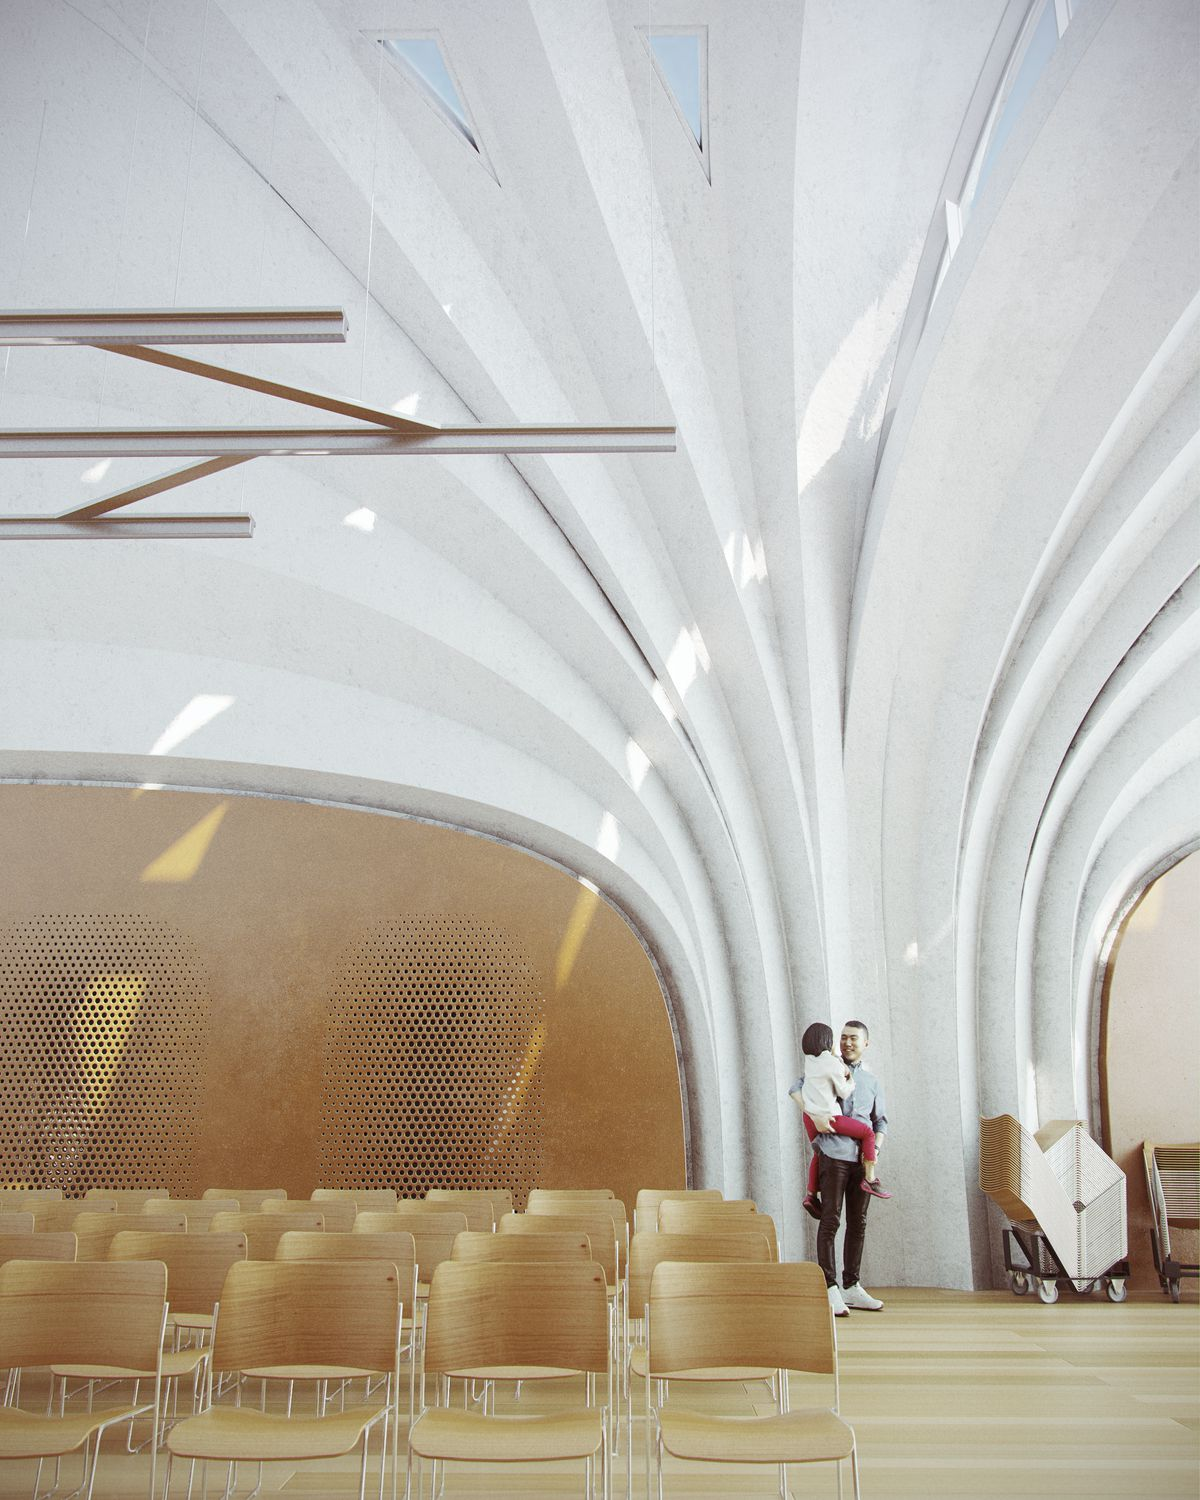 Zaha Hadid Architects Designs Vaulted School In China Made